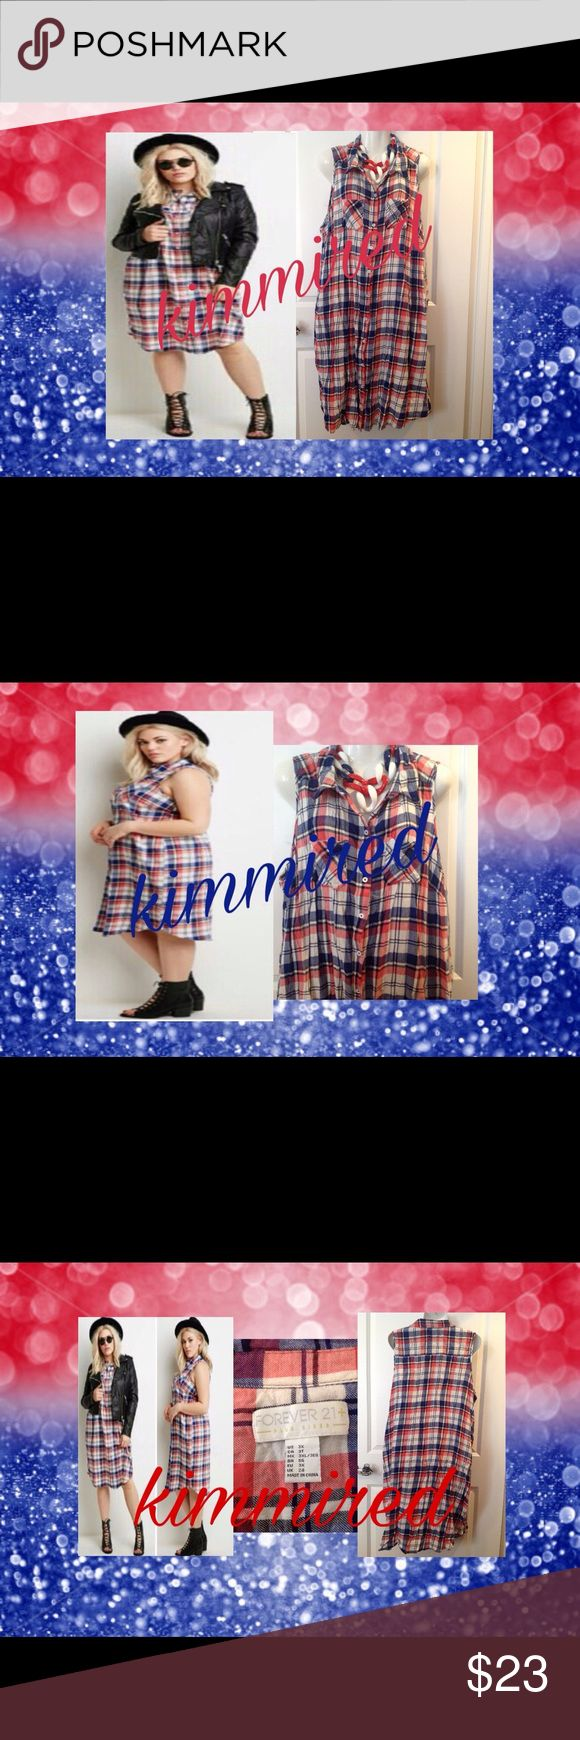 FoReVeR 21 🔴⚪️🔵Plaid Shirt Dress/Tunic~ 3X ~ EUC ✔️🇱🇷 PERFECT FOR THE JULY 4th🇱🇷 This red, white & blue plaid number has been worn by me as a shirt dress/duster/tunic. I also wore it open w/ a tank & denim/white shorts/capris. My fav was over a red sleeveless shirt dress! Uber cute & always lots of compliments!  It's sleeveless, has a button front & in excellent condition. It's wrinkled b/c hand washed & hung to dry.   Necklace❌NOT❌ included‼️ Measured laying flat & is approximate…